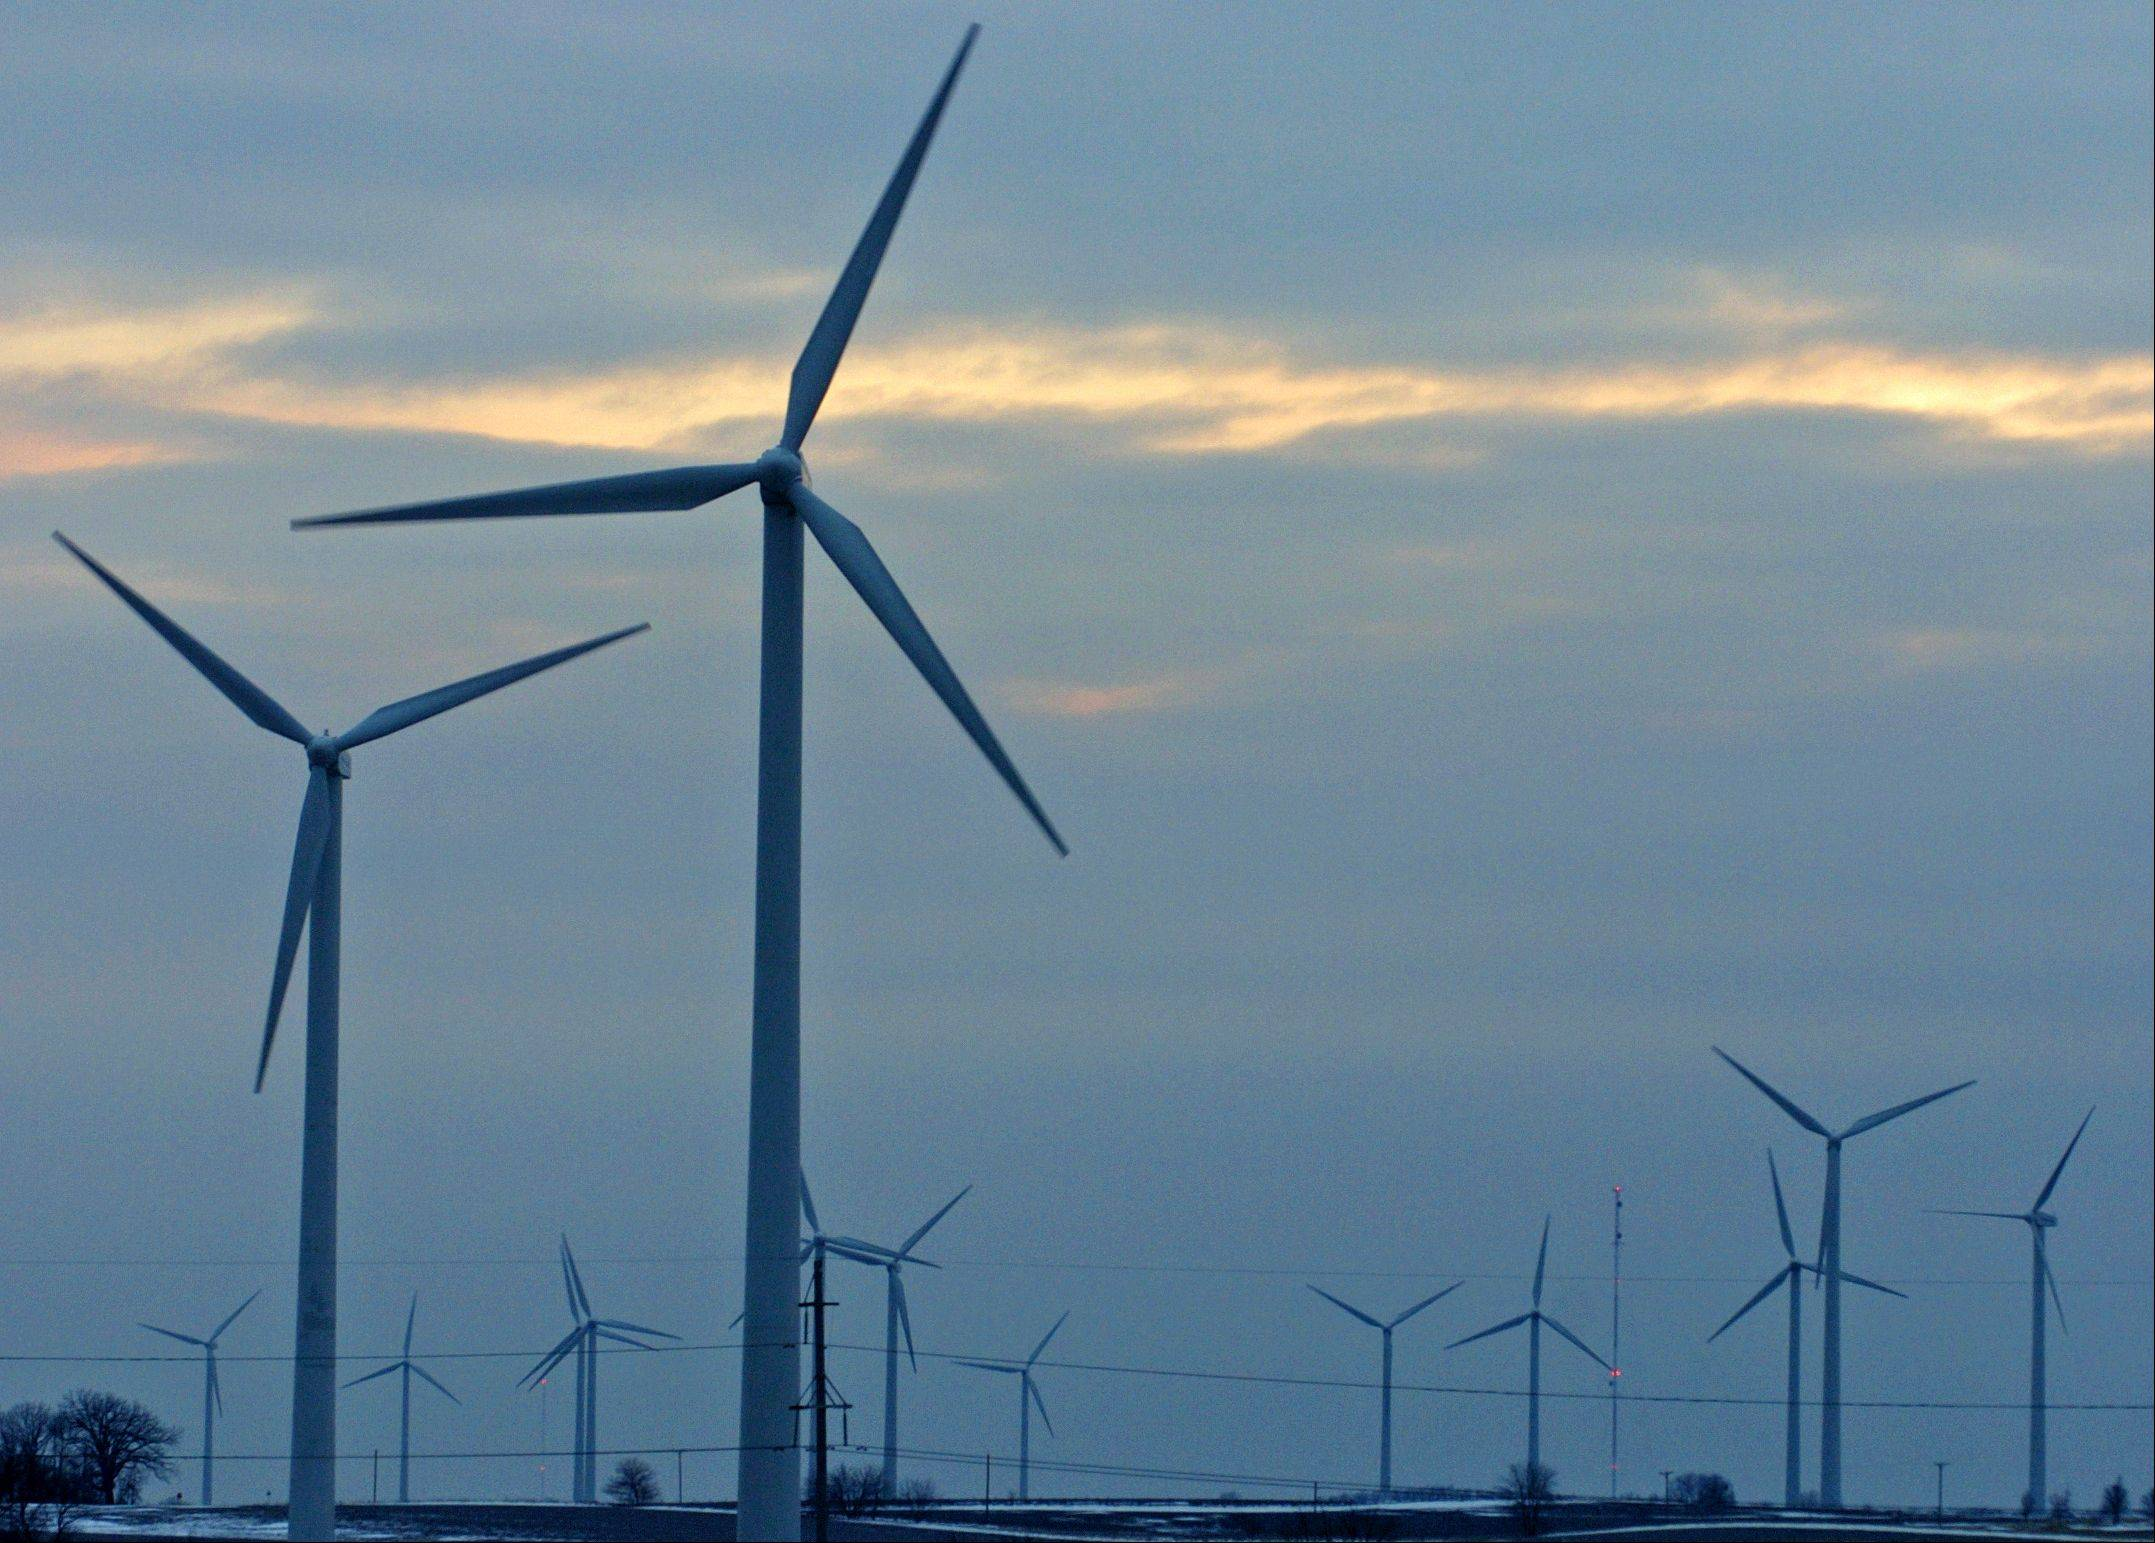 Illinois wind farms now supply 5 percent of the electricity used by Chicago residents and small businesses who participate in a new aggregation program, Mayor Rahm Emanuel�s office said Tuesday, lauding what environmentalists say could serve as a model for other communities.